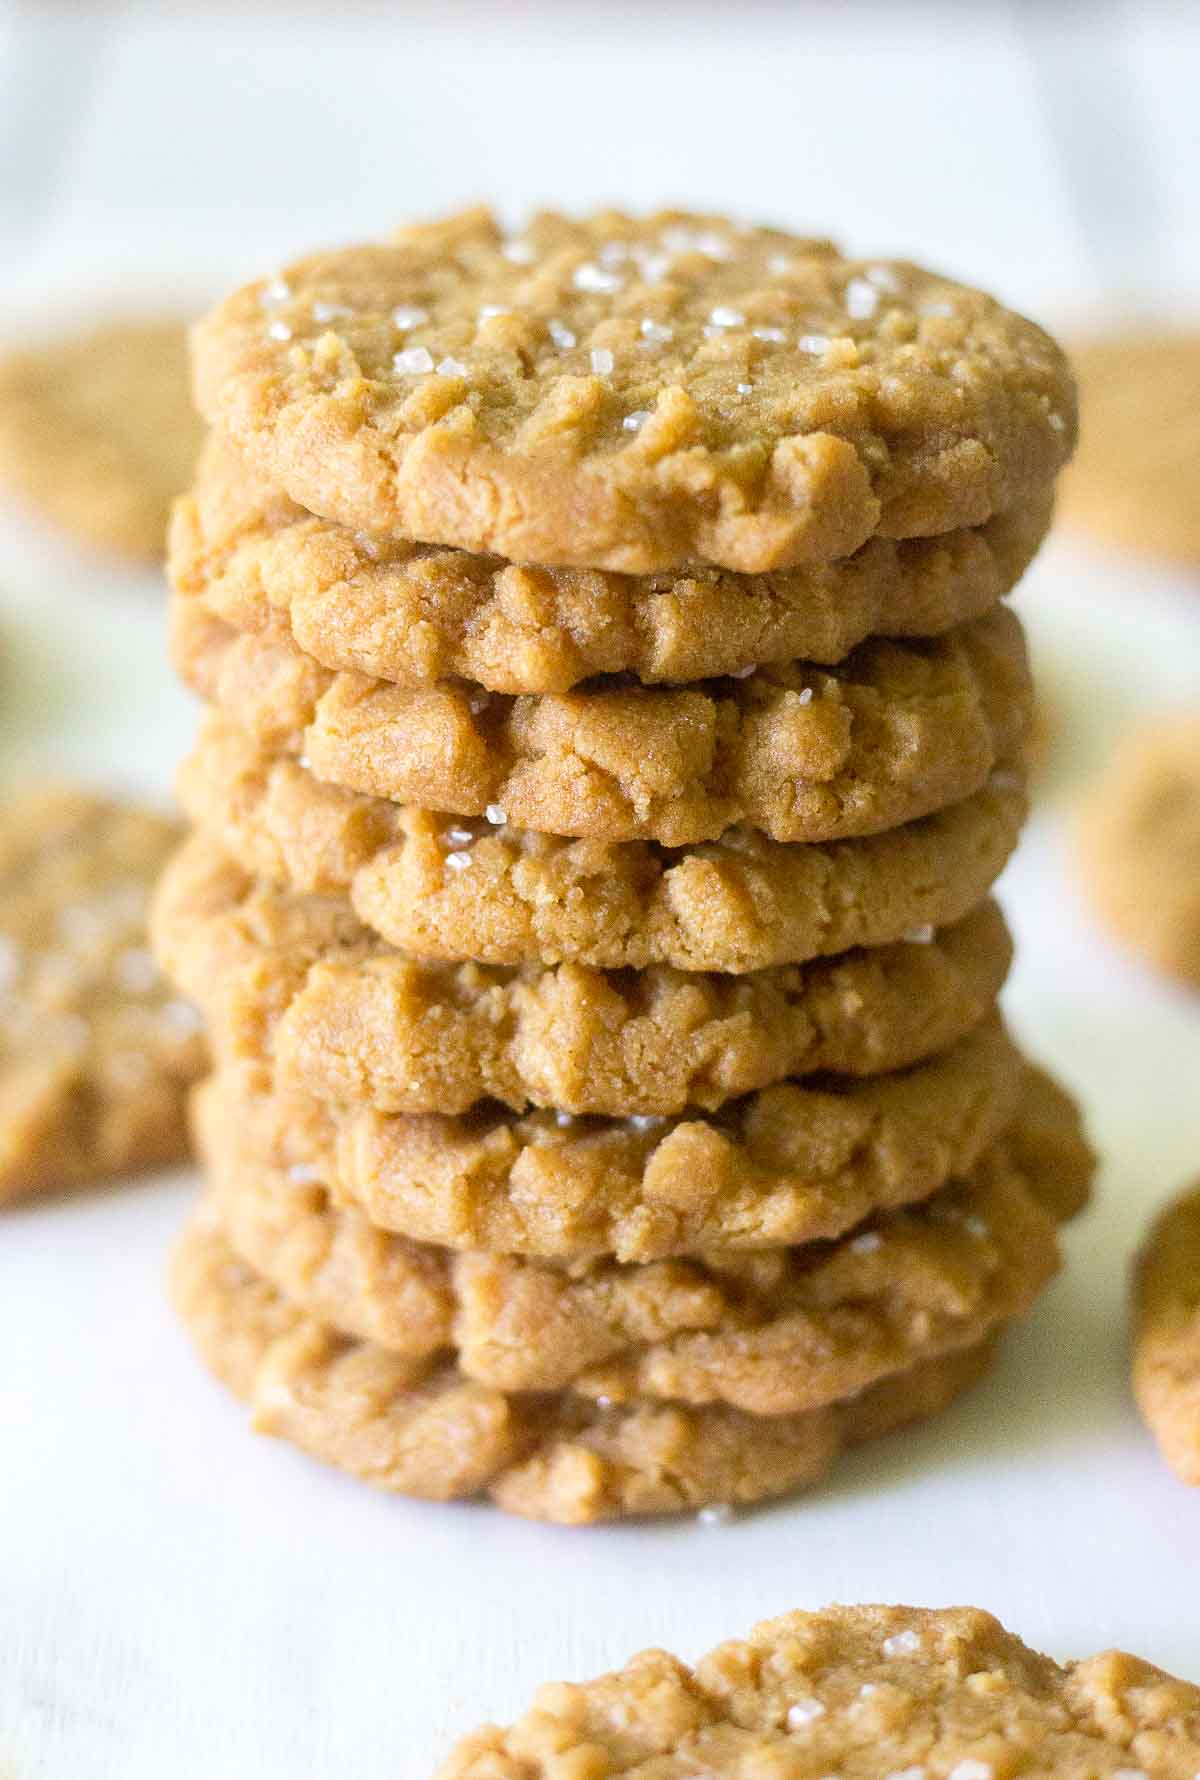 These flourless peanut butter cookies are made in less than 20 minutes! They don't include any flour so they're gluten free, plus there's no butter in this recipe either. You will love how delicious they are!